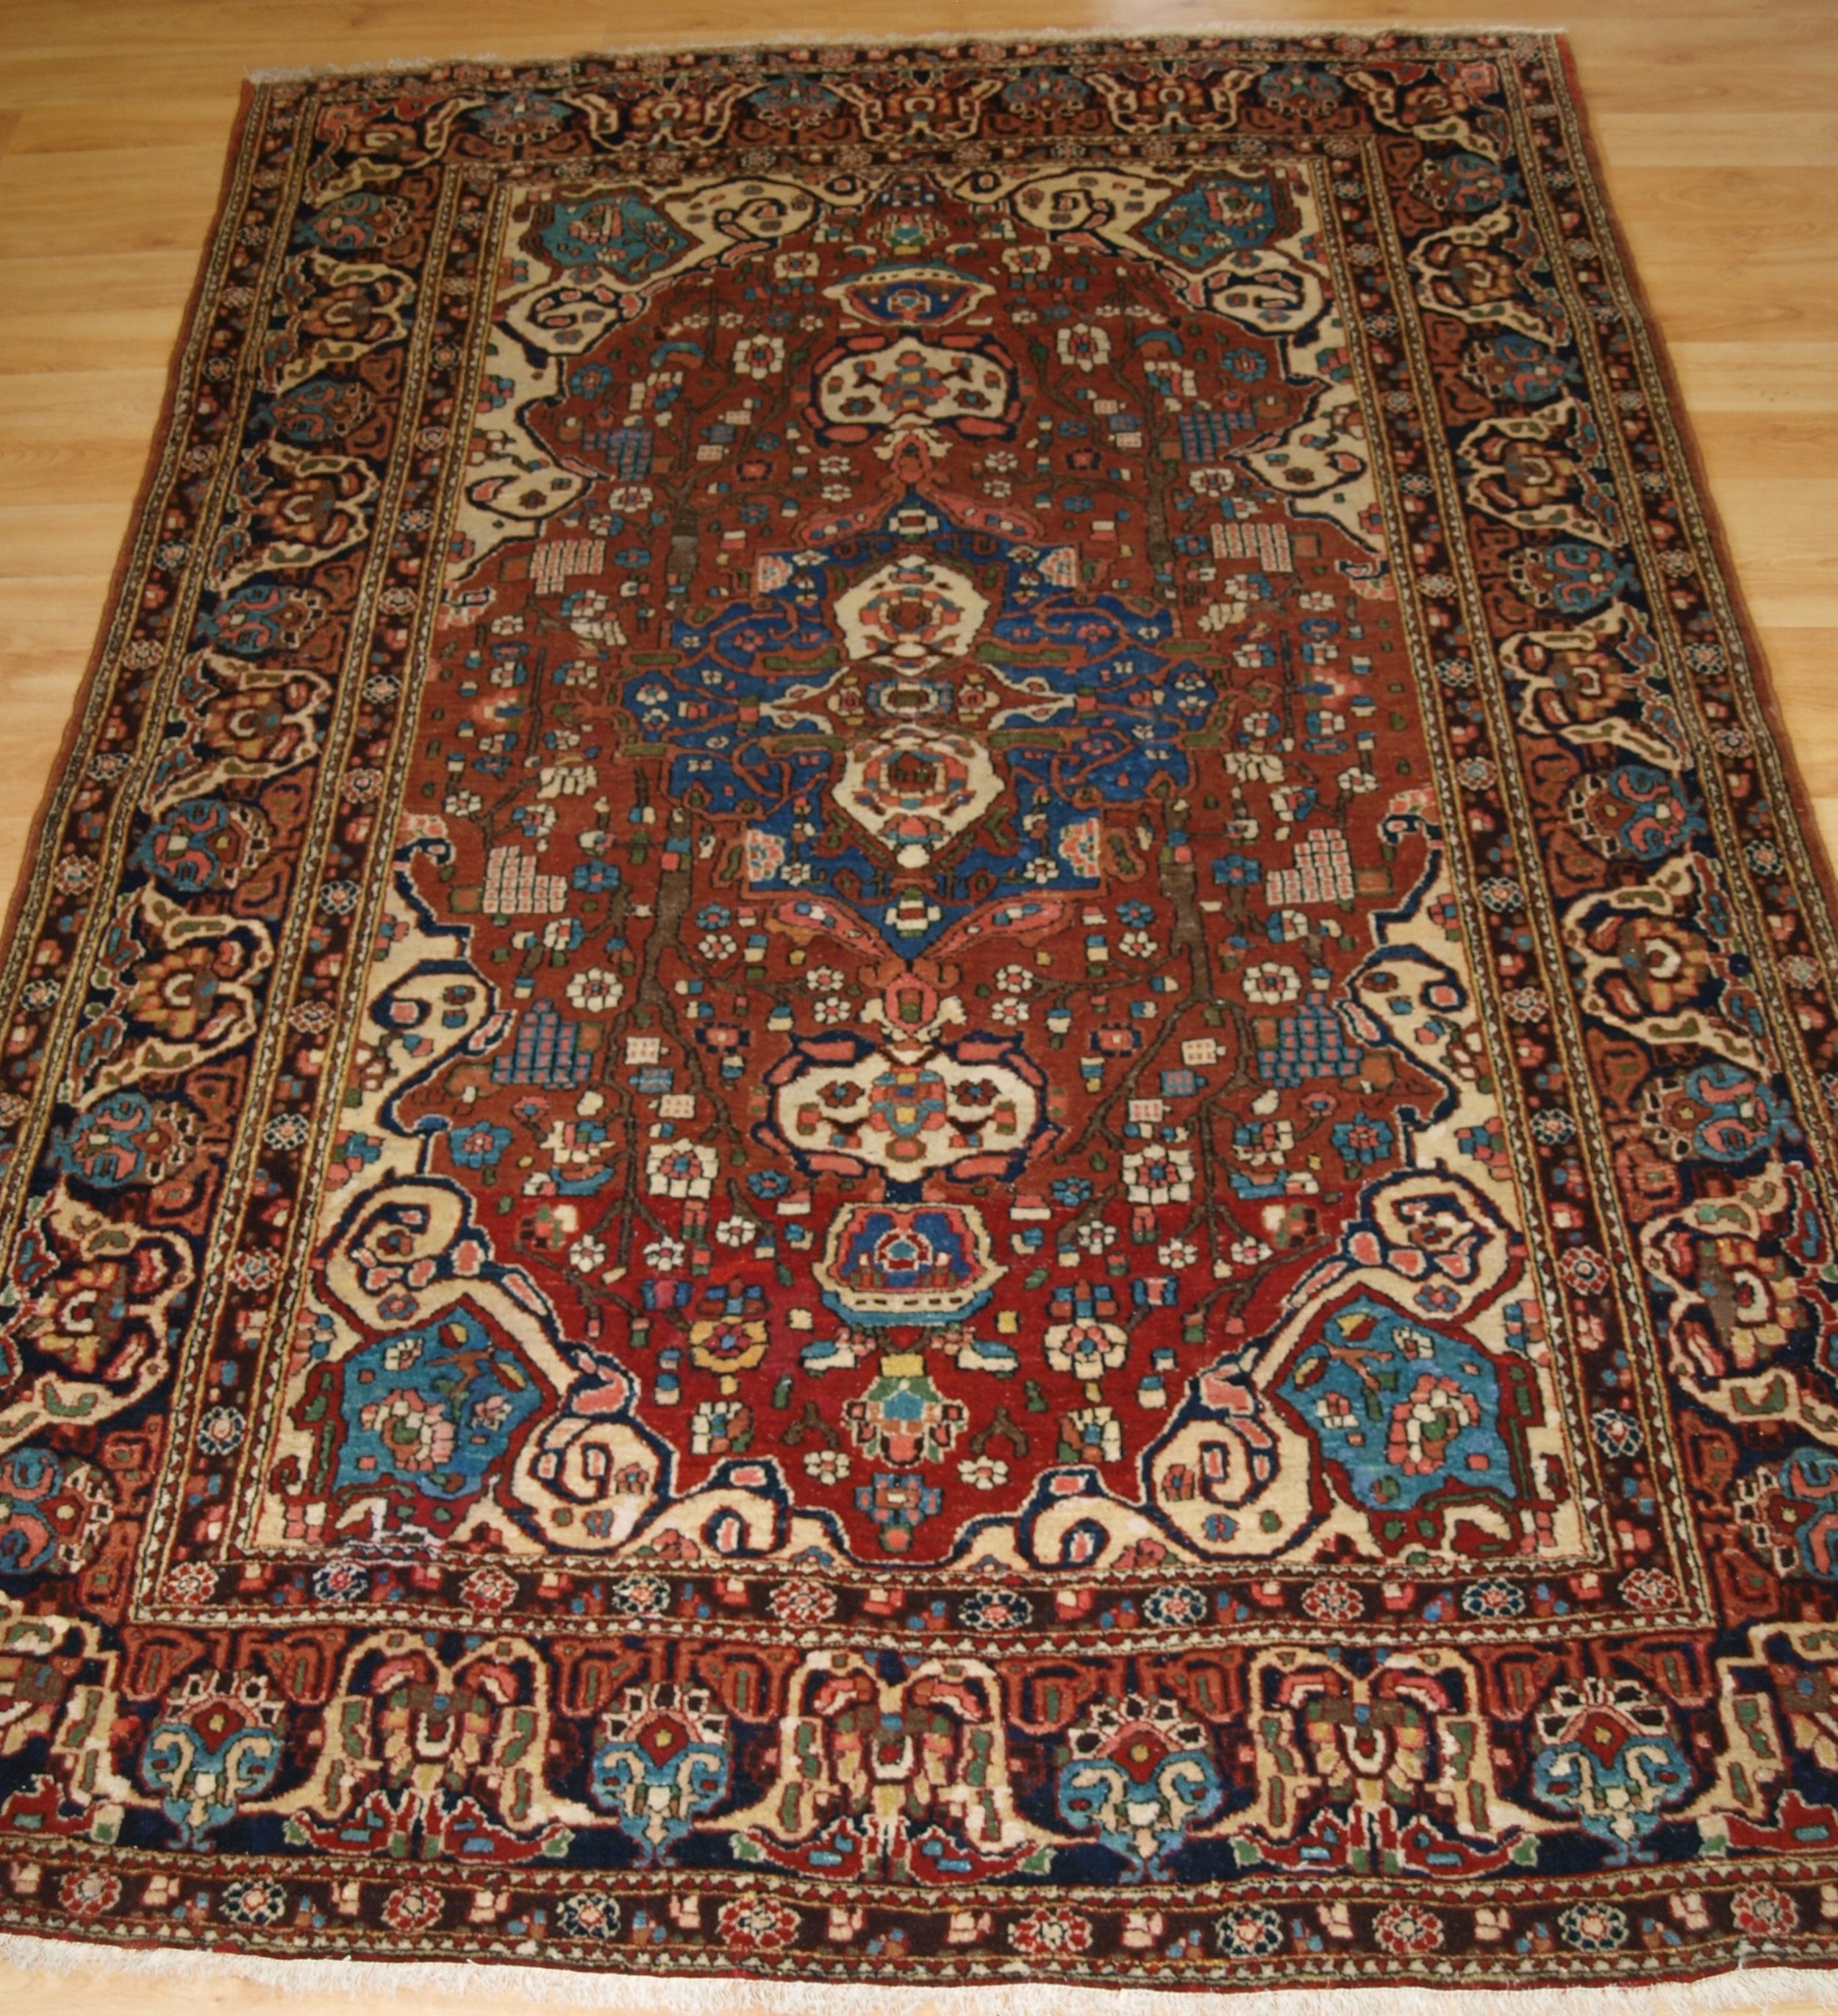 Antique Oriental Rugs Uk: Antique Persian Isfahan Rug With Small Medallion, Good